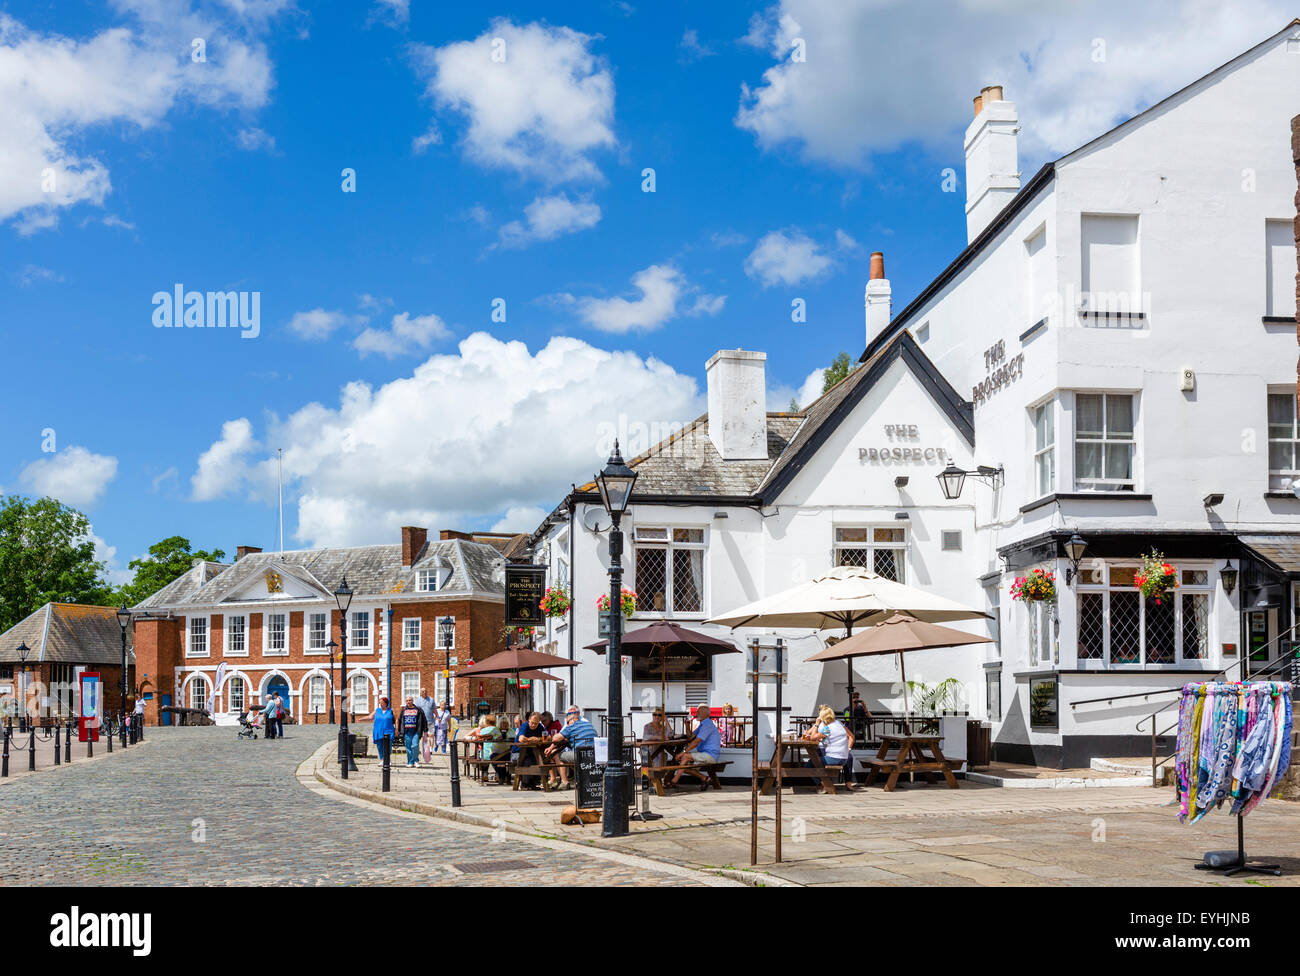 The Prospect pub with the historic Custom House behind, The Quay, Exeter, Devon, England, UK - Stock Image